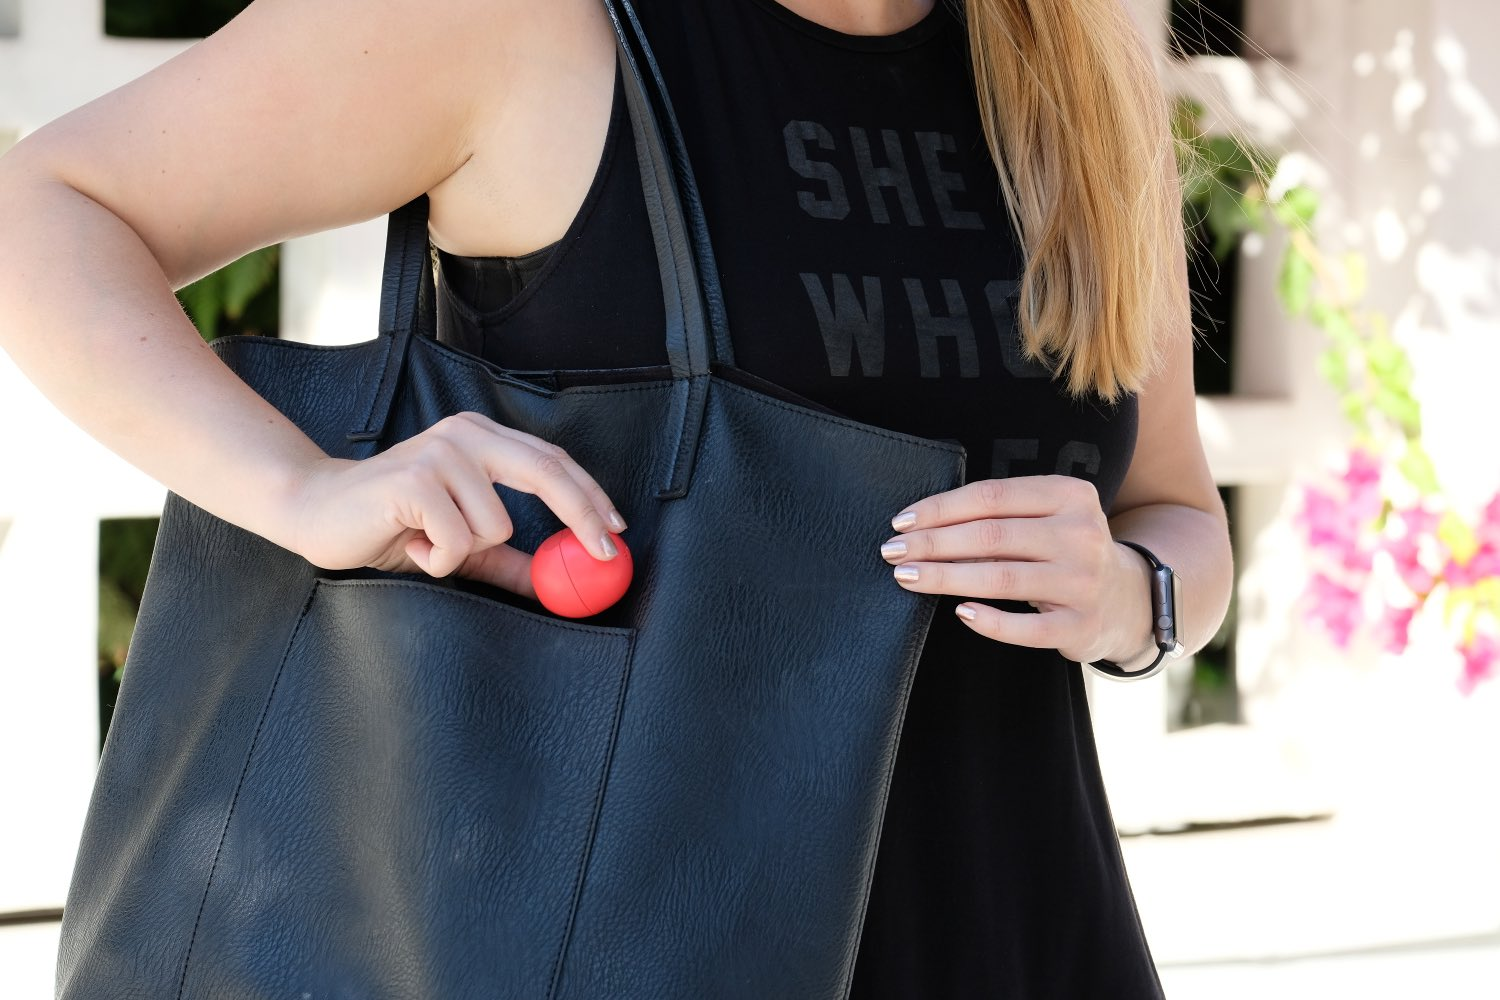 eos lip balm purse essential